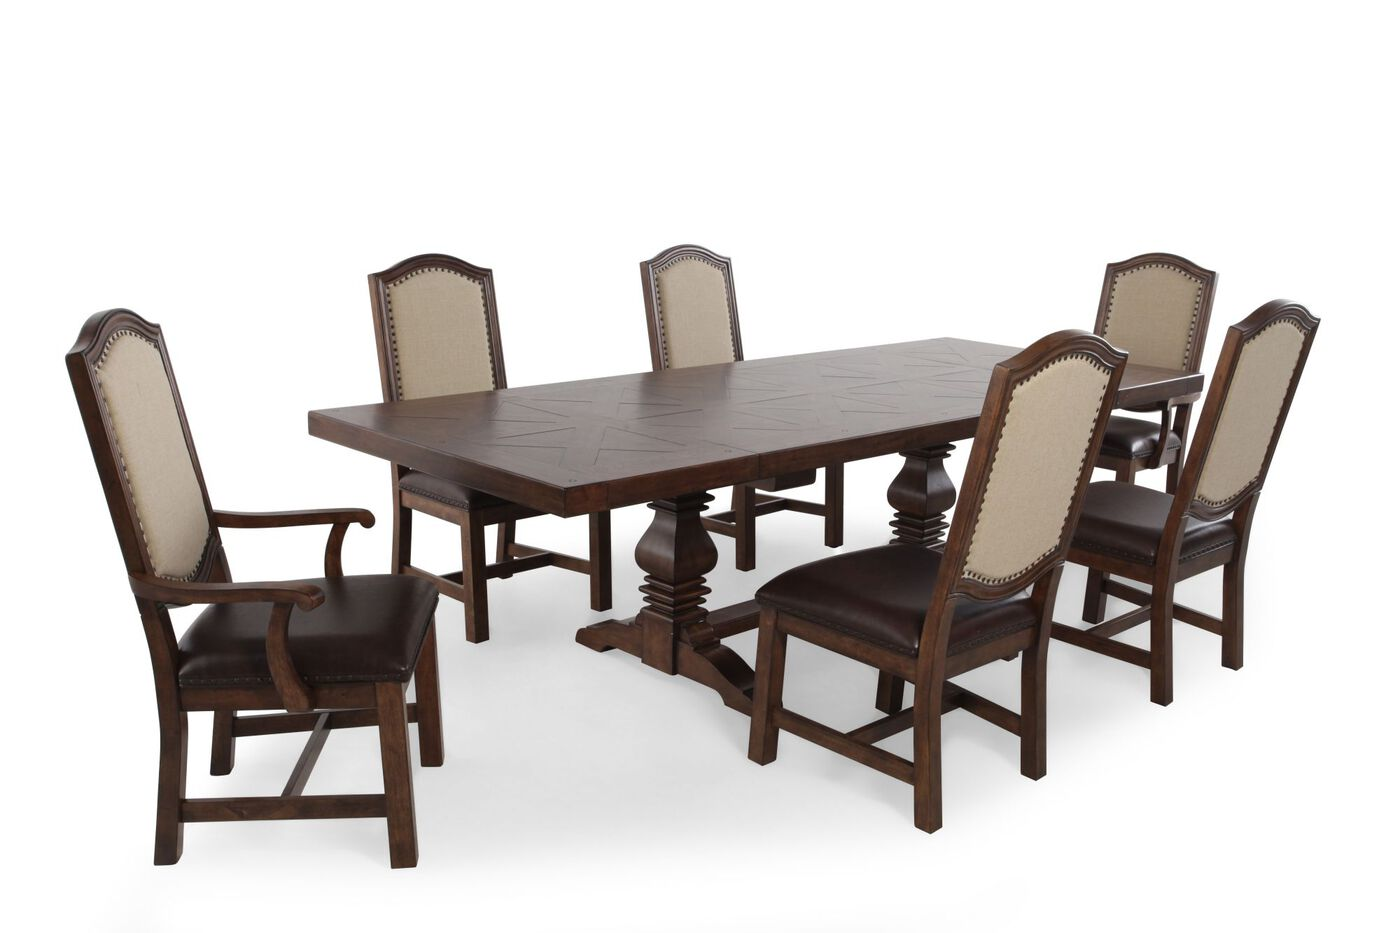 Seven piece traditional 72 39 39 to 108 39 39 dining set in light for 108 dining room table